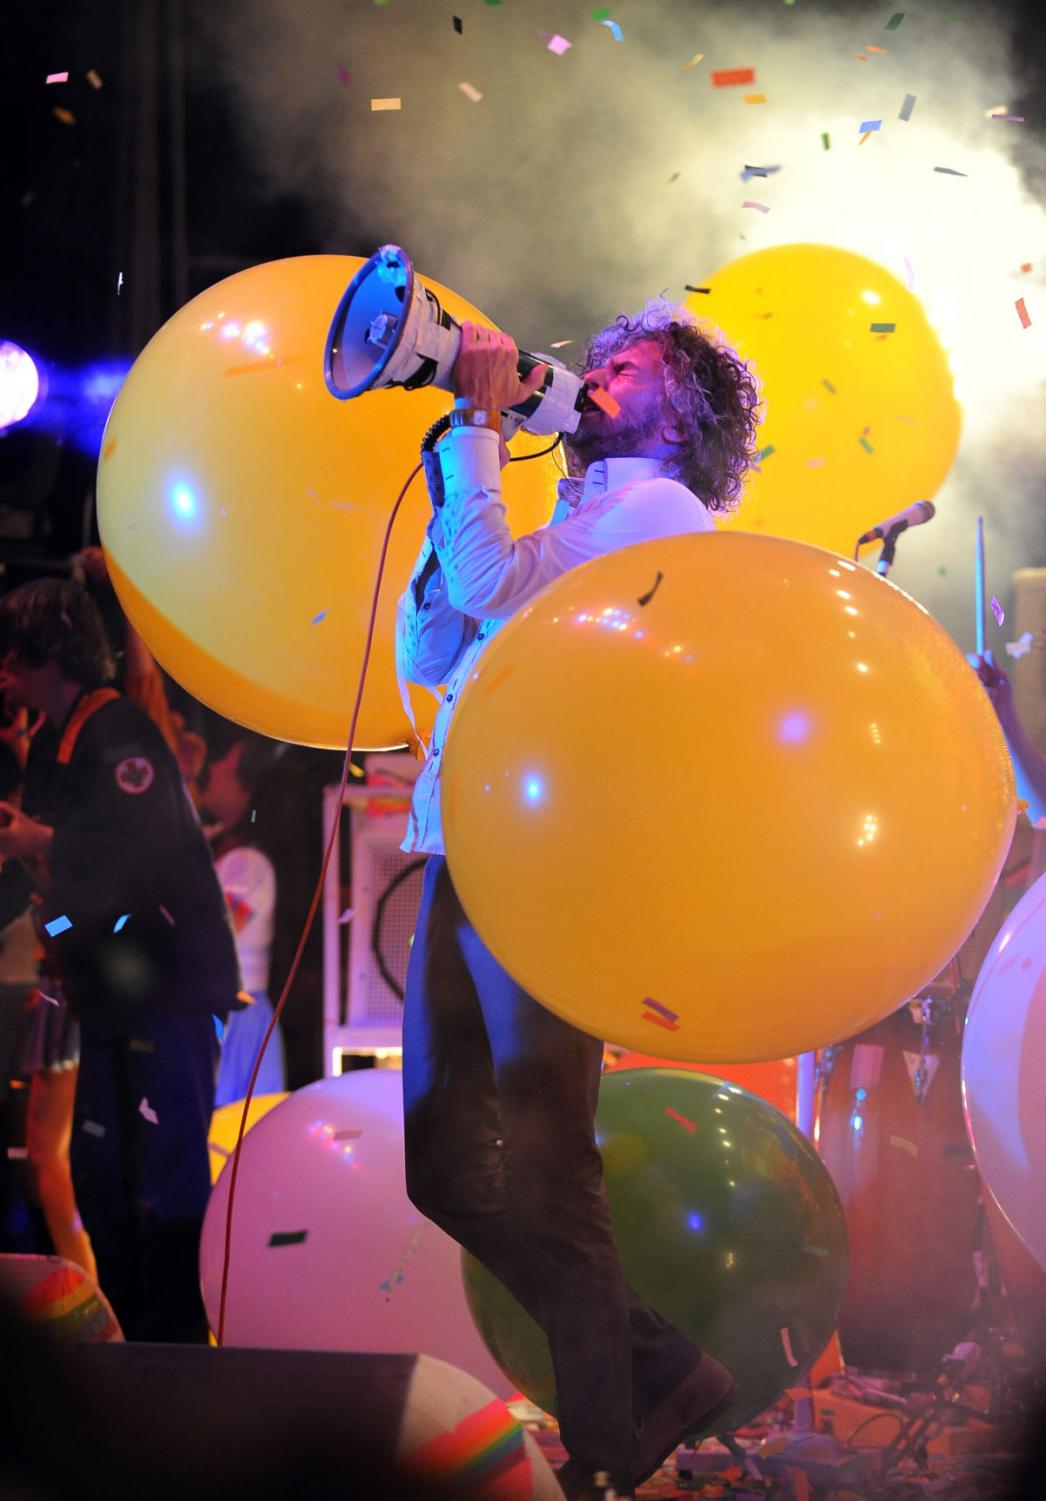 The Flaming Lips lead singer Wayne Coyne and Miley Cyrus have become close friends lately, even getting matching tattoos and collaborating musically.